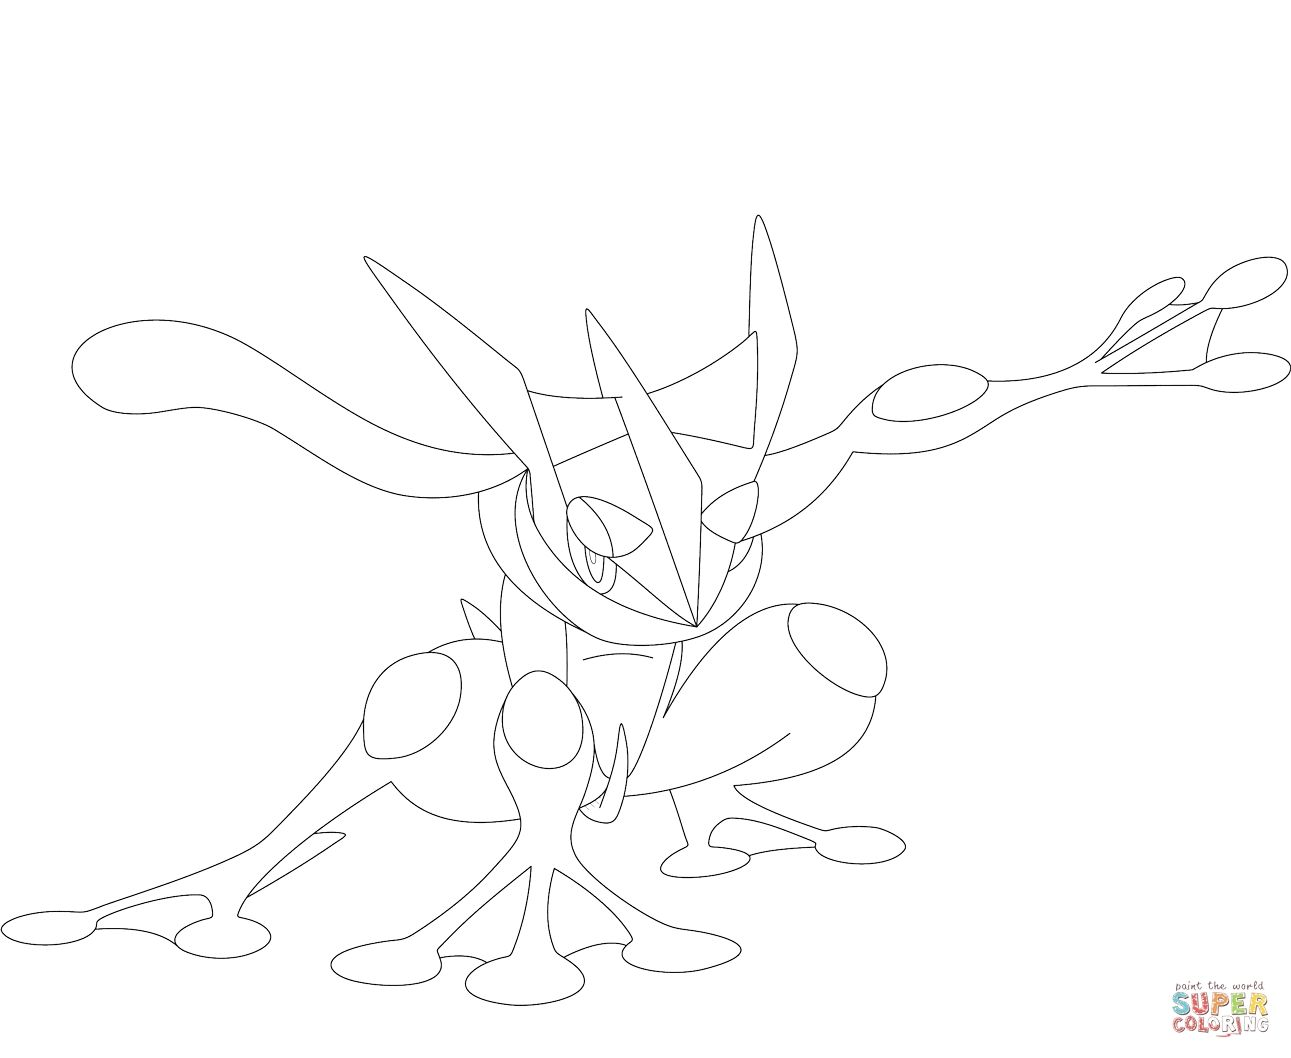 Greninja Pokemon Coloring Page Coloring Pages Allow Kids To Accompany Their Favorite Characters On An Pokemon Coloring Pages Coloring Pages Pokemon Coloring